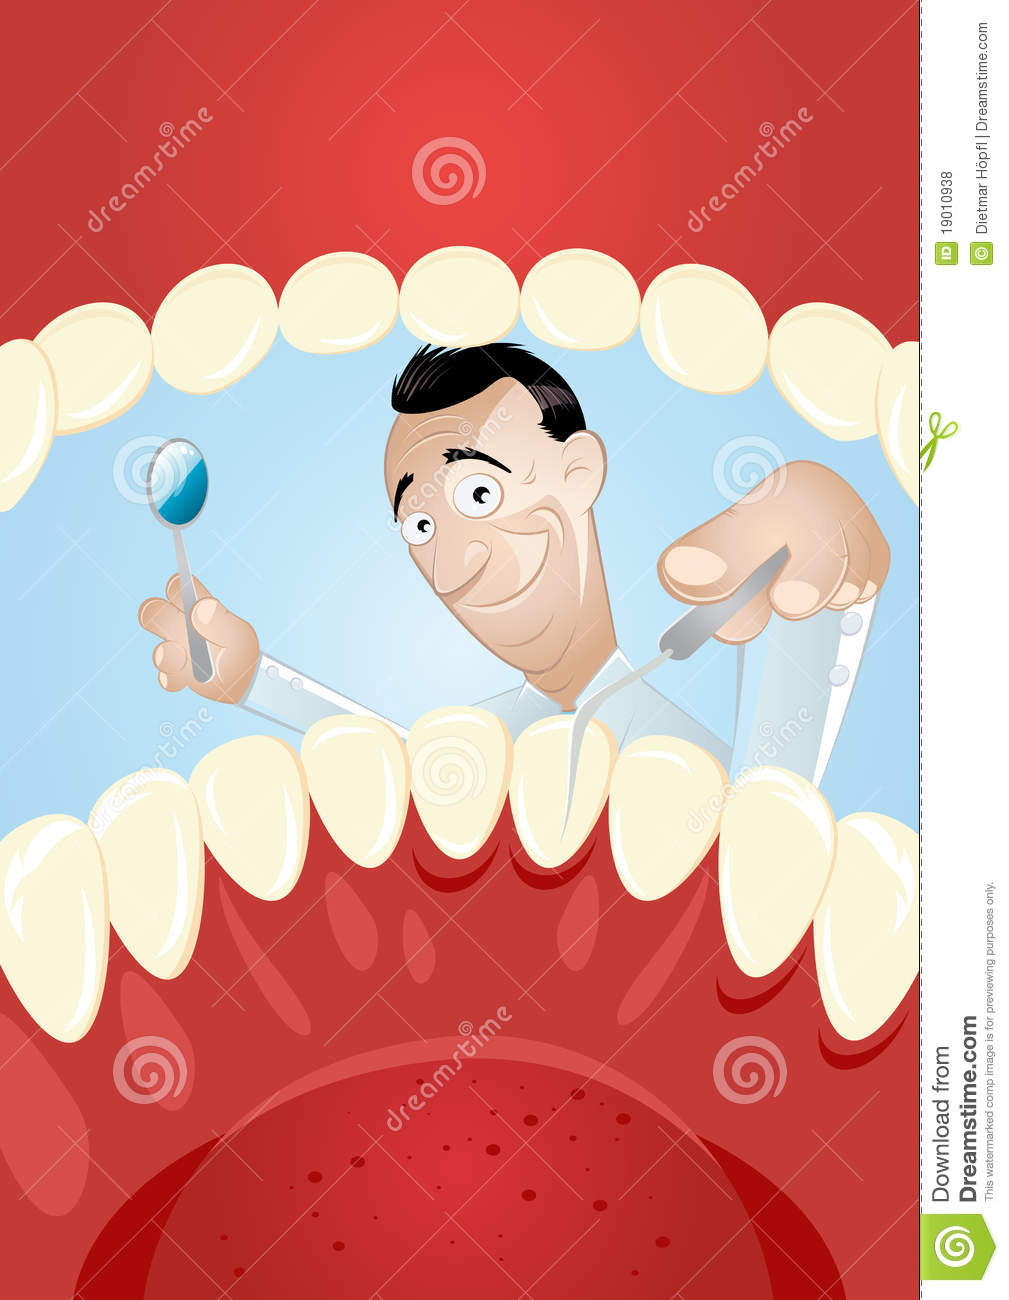 Cartoon dentist inside mouth royalty free stock photos for Interieur bouche